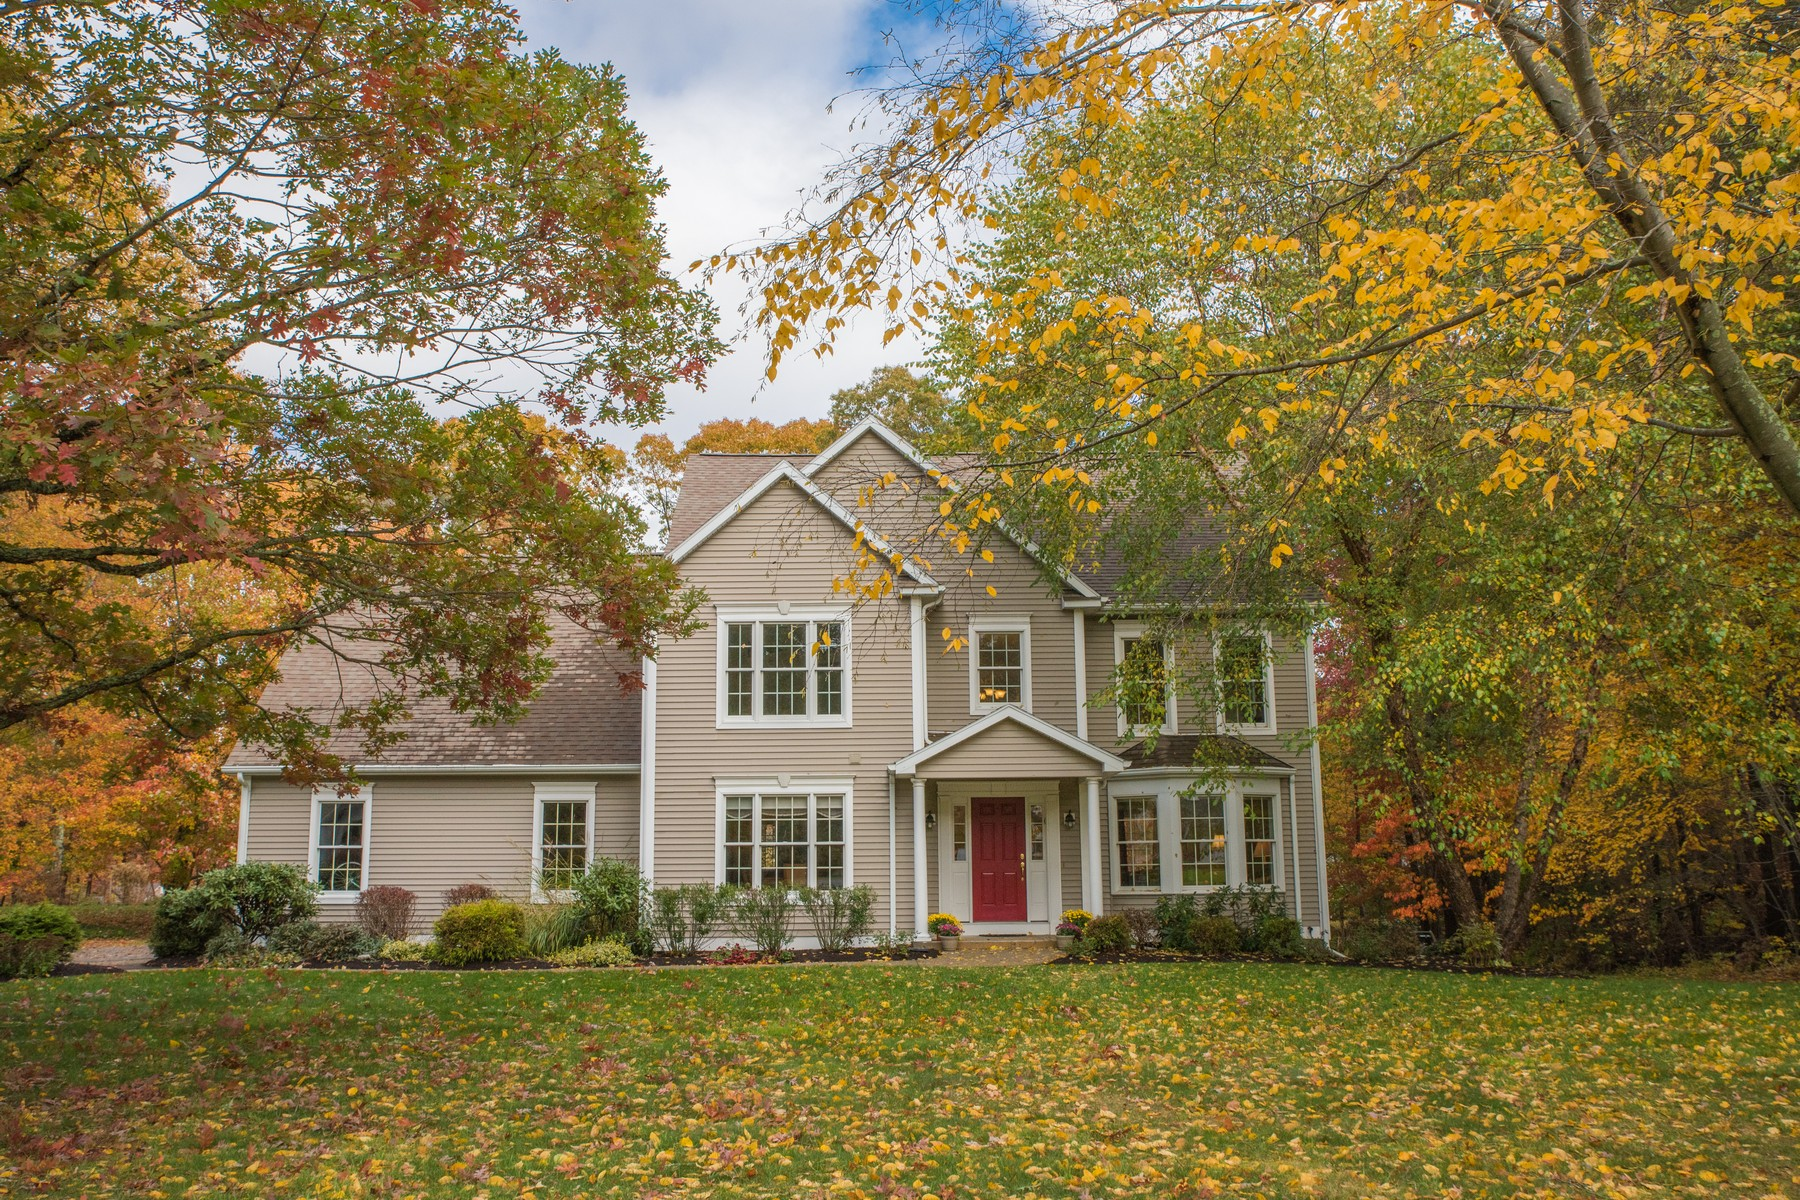 Single Family Home for Sale at Lovely Custom Built Colonial 12 Jean Drive East Lyme, Connecticut 06333 United States